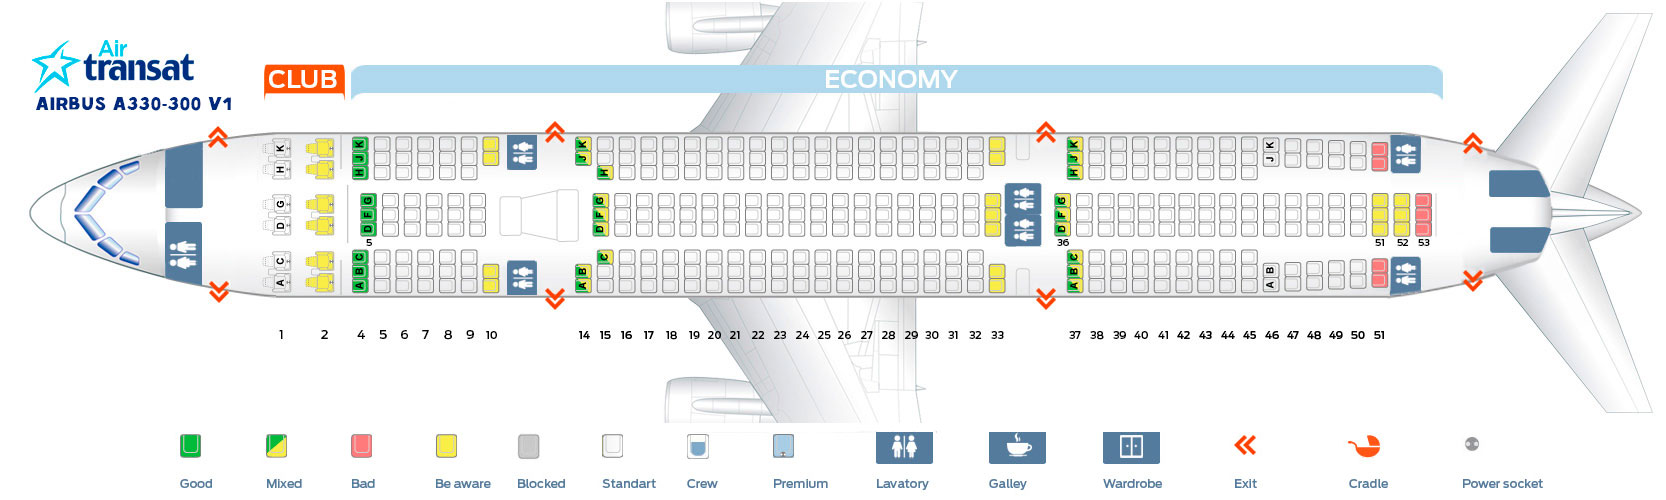 Seat map Airbus A330-300 V1 Air Transat